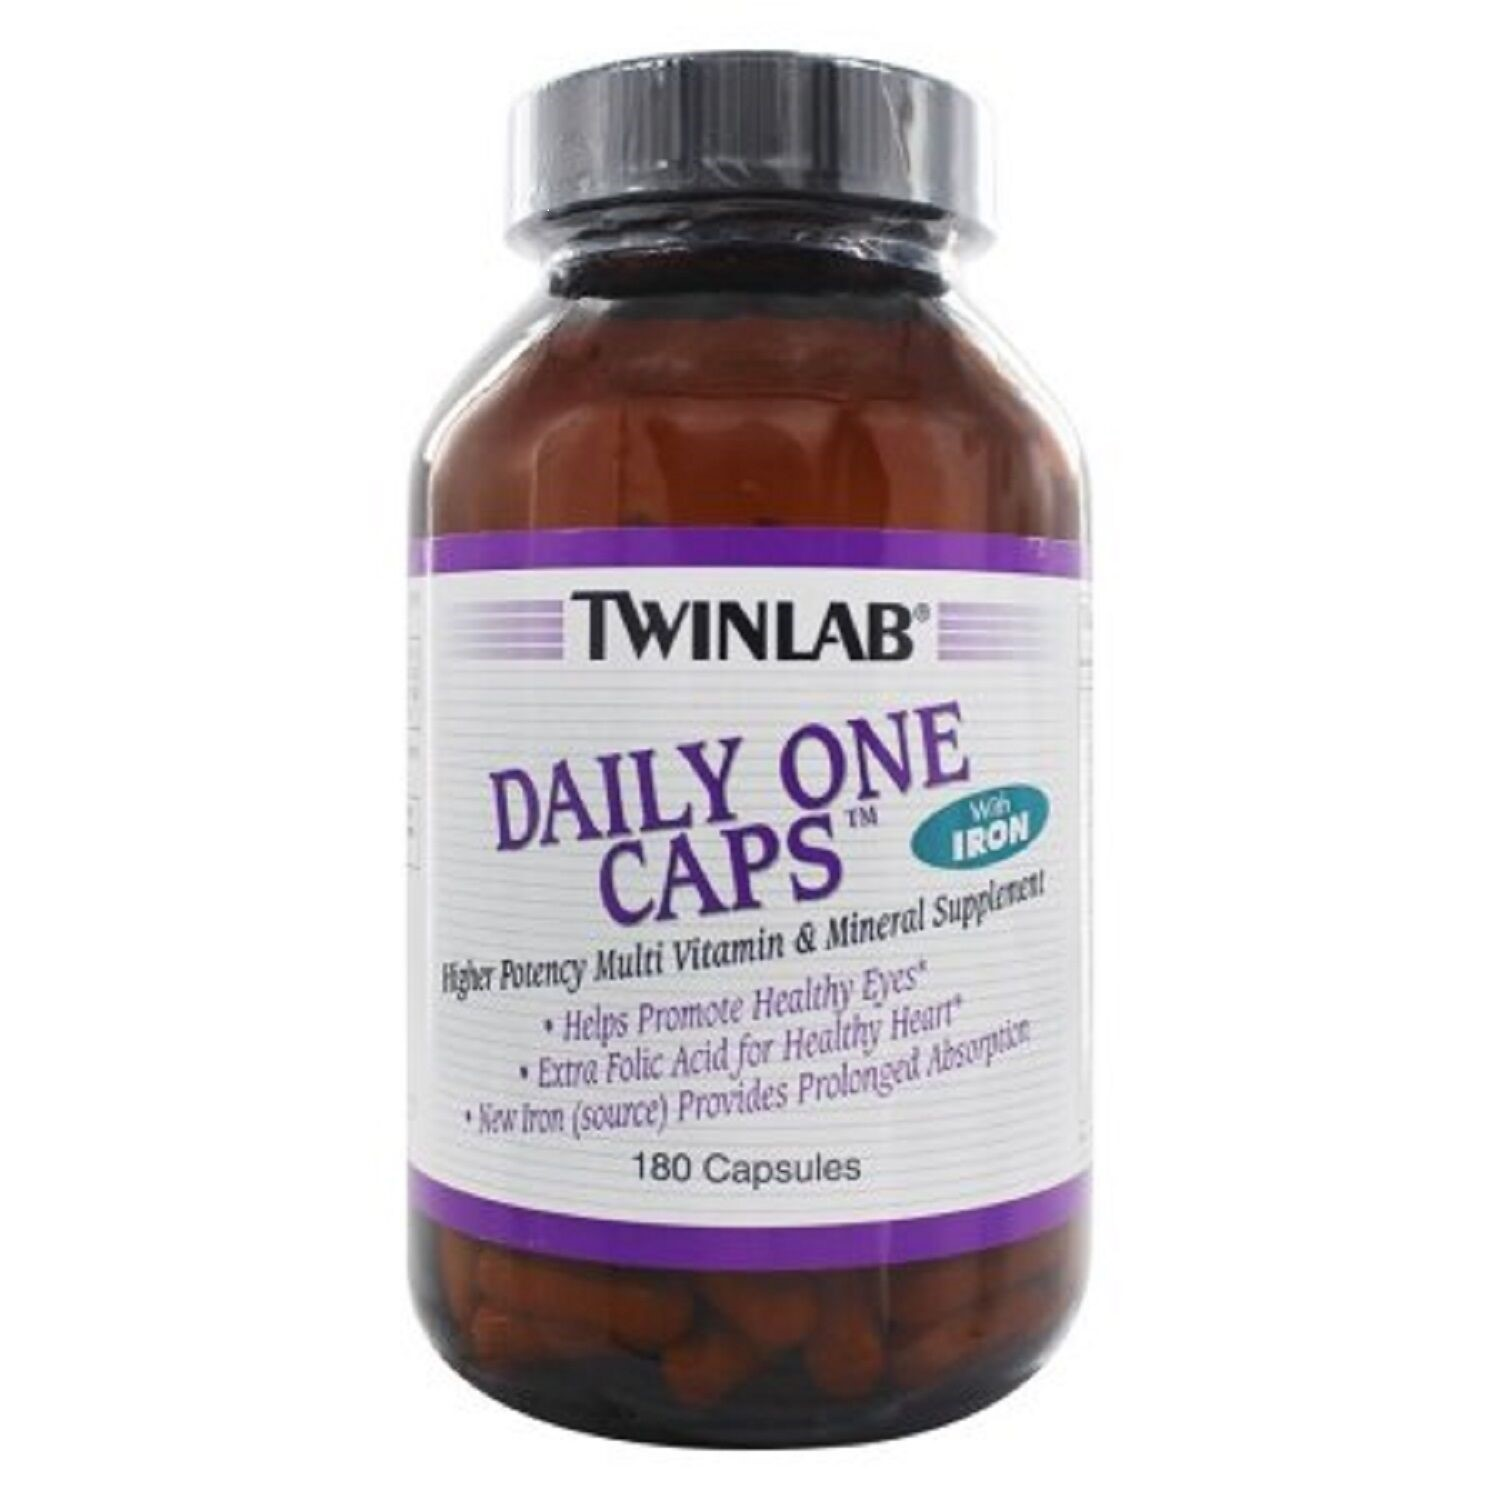 Twinlab Daily One Multivitamin with Iron Capsules, 180 Ct